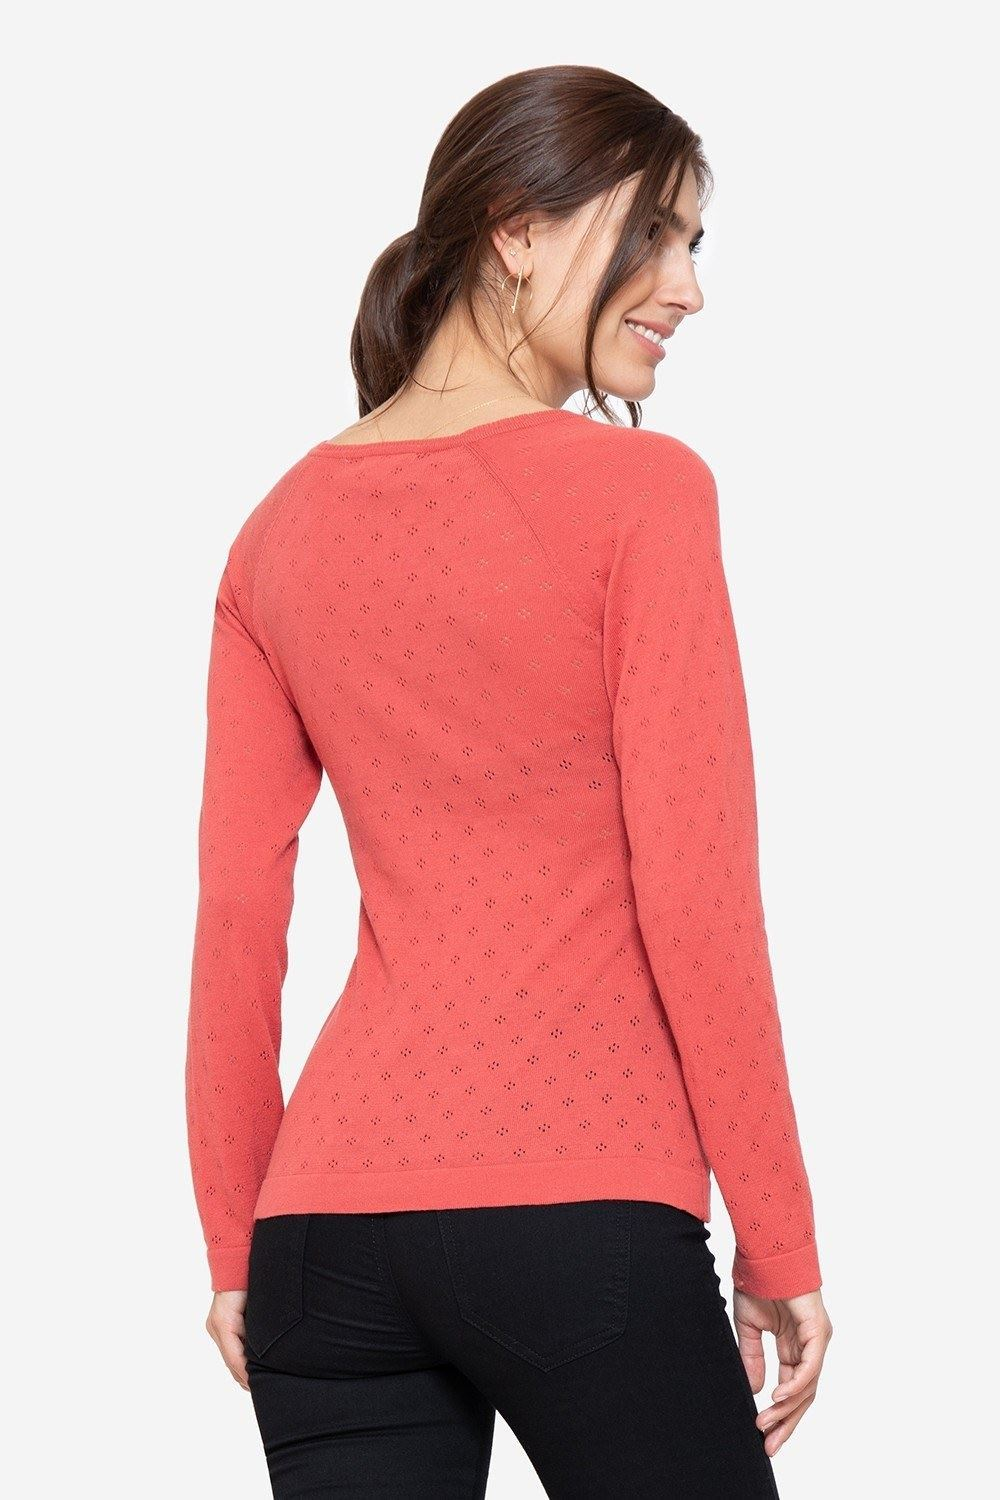 Coral coloured Nursing Pullover with V-neck, seen from behind